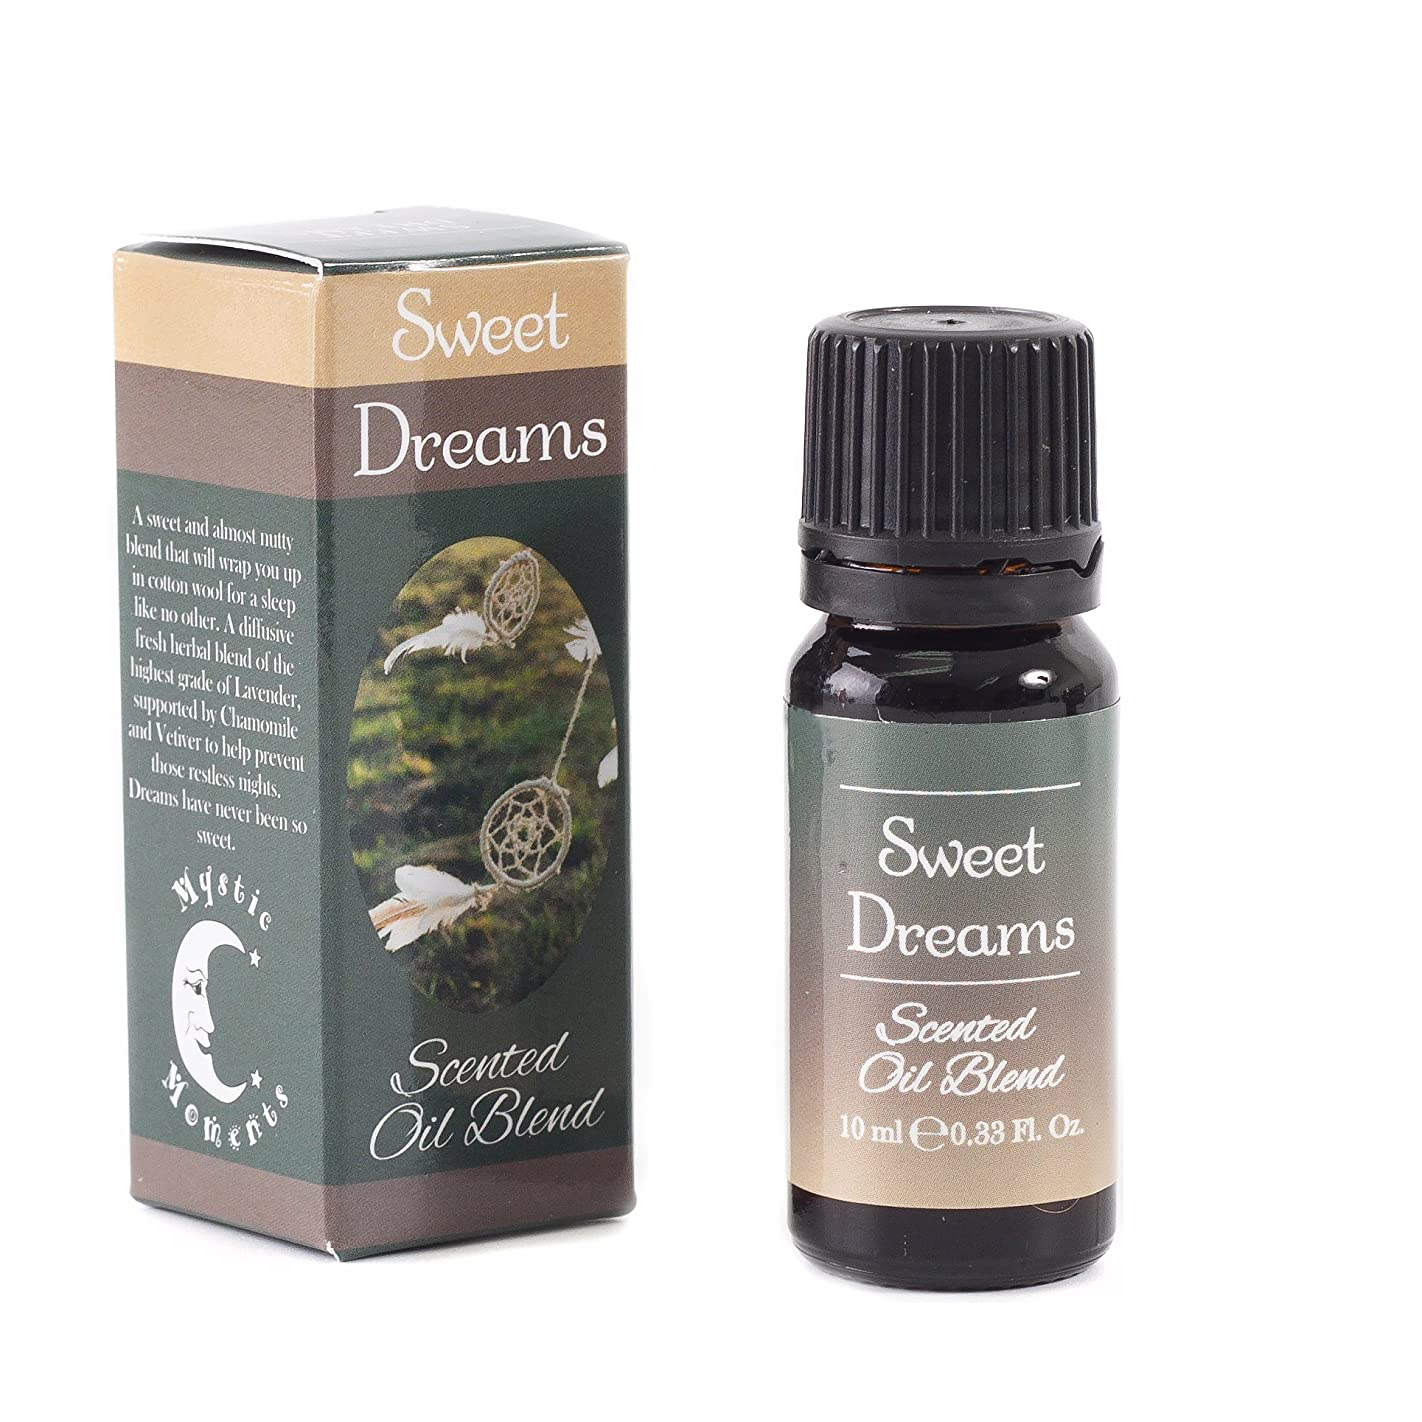 コミュニケーション予想する増幅器Mystic Moments | Sweet Dreams - Scented Oil Blend - 10ml